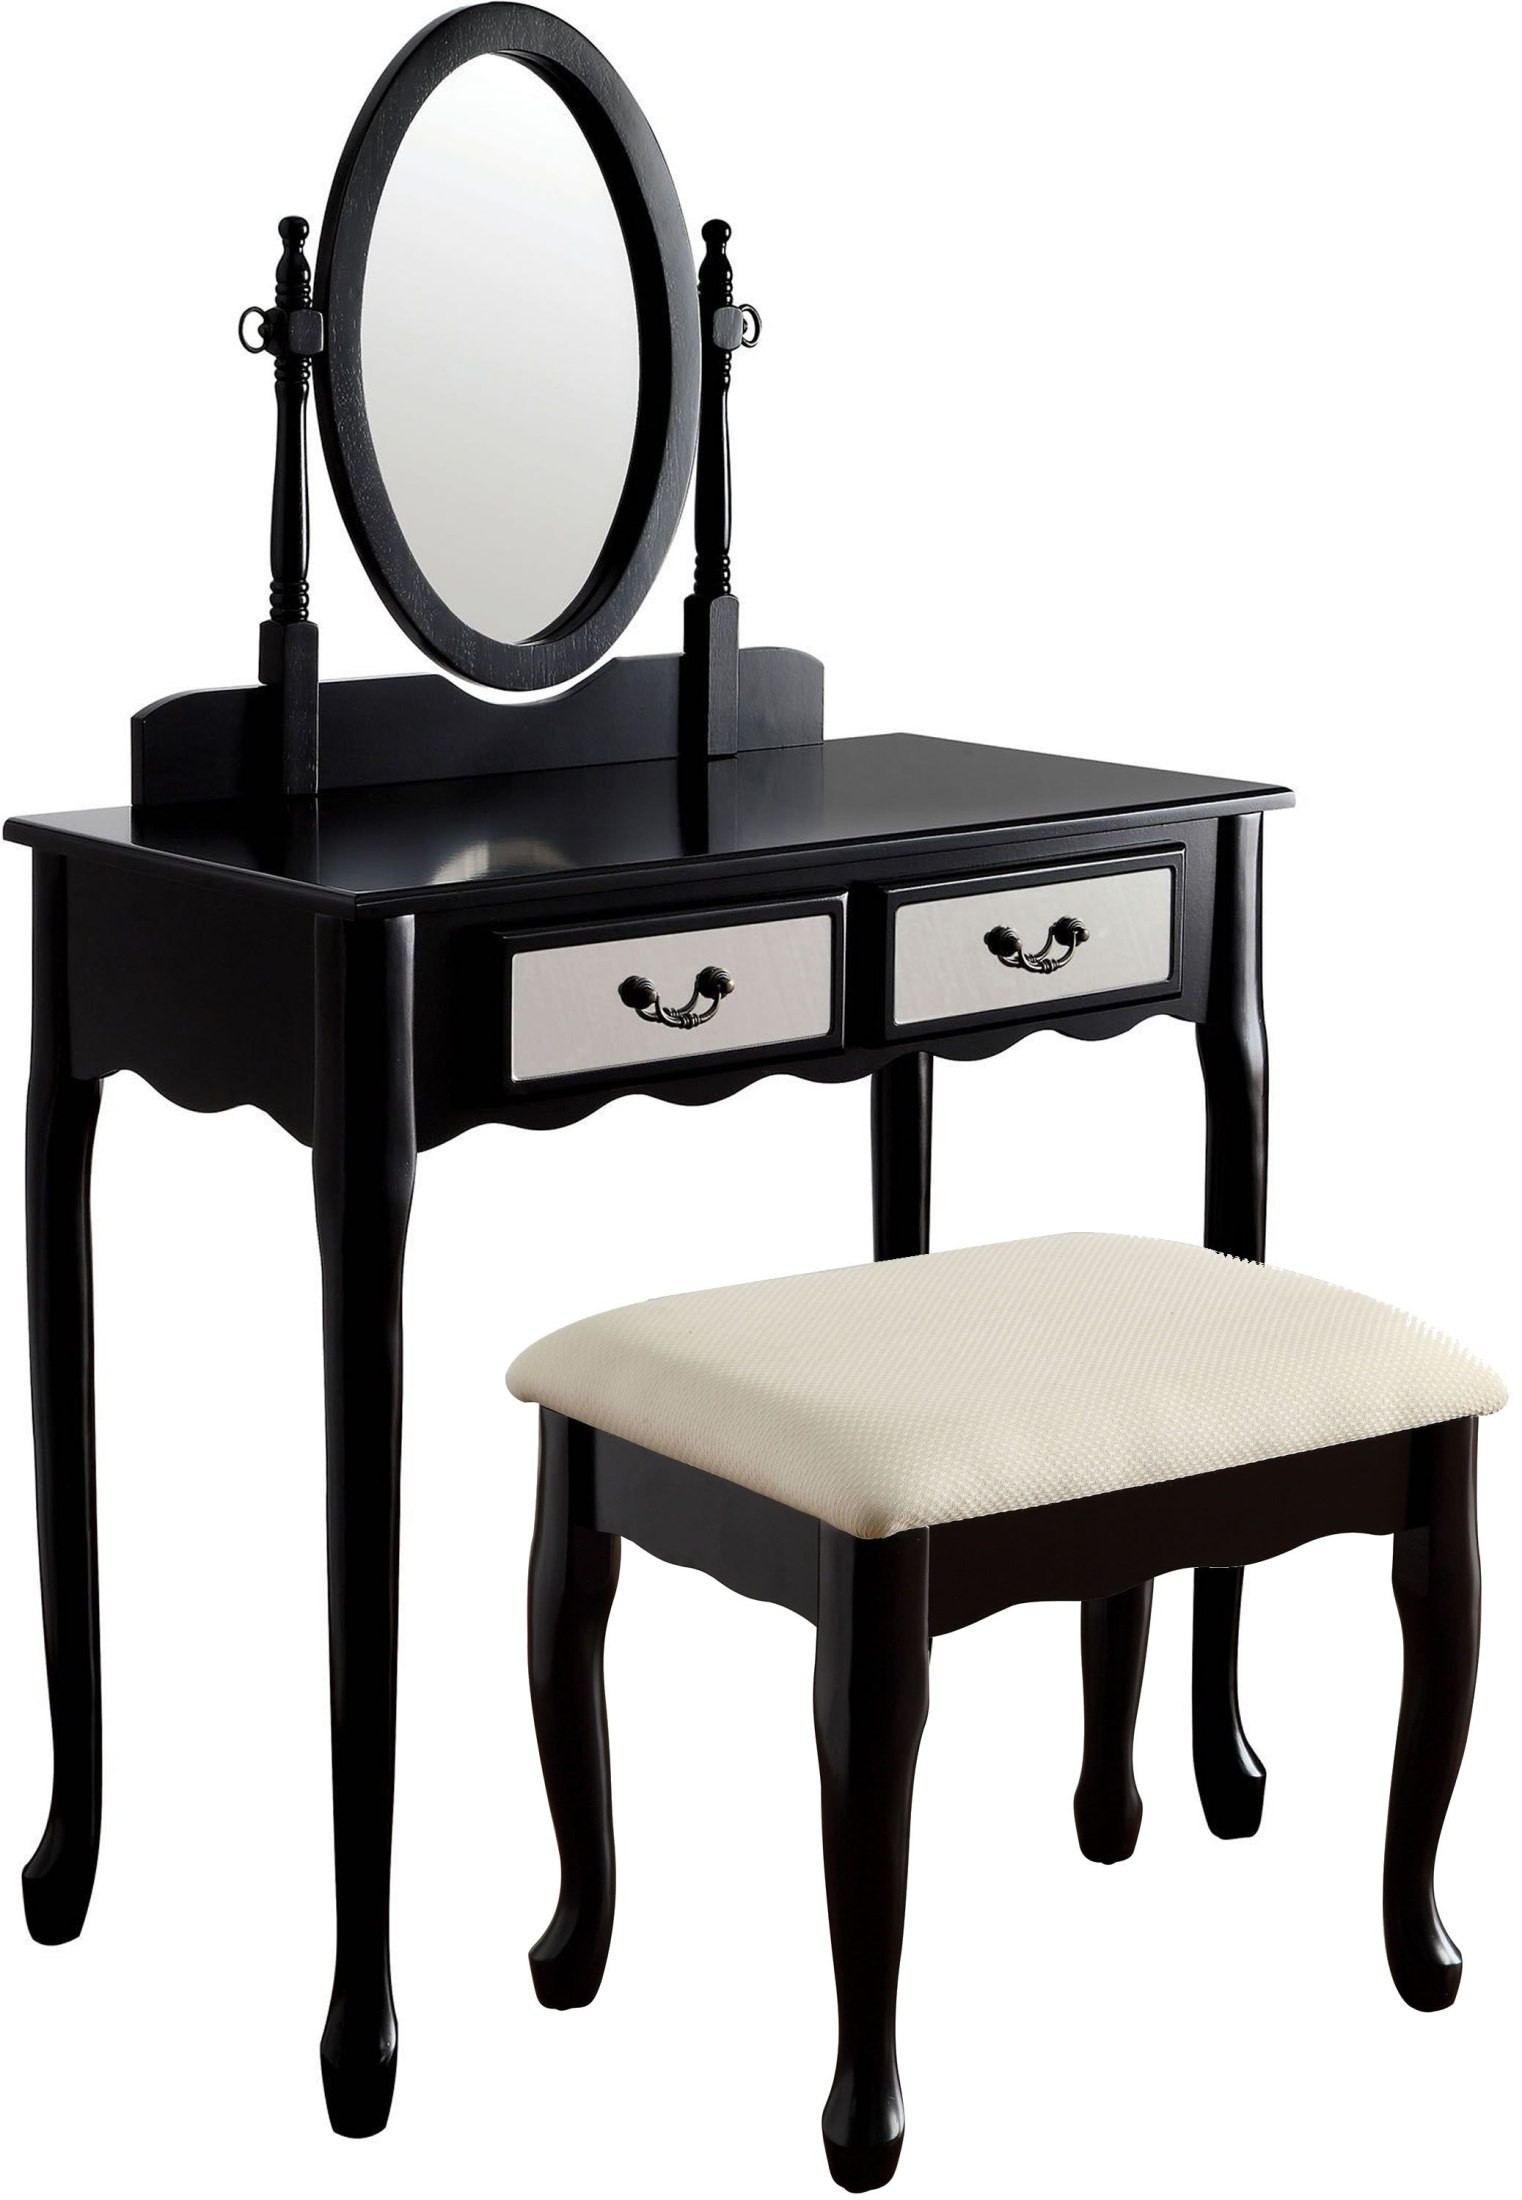 Adriana Black Vanity With Stool from Furniture of America